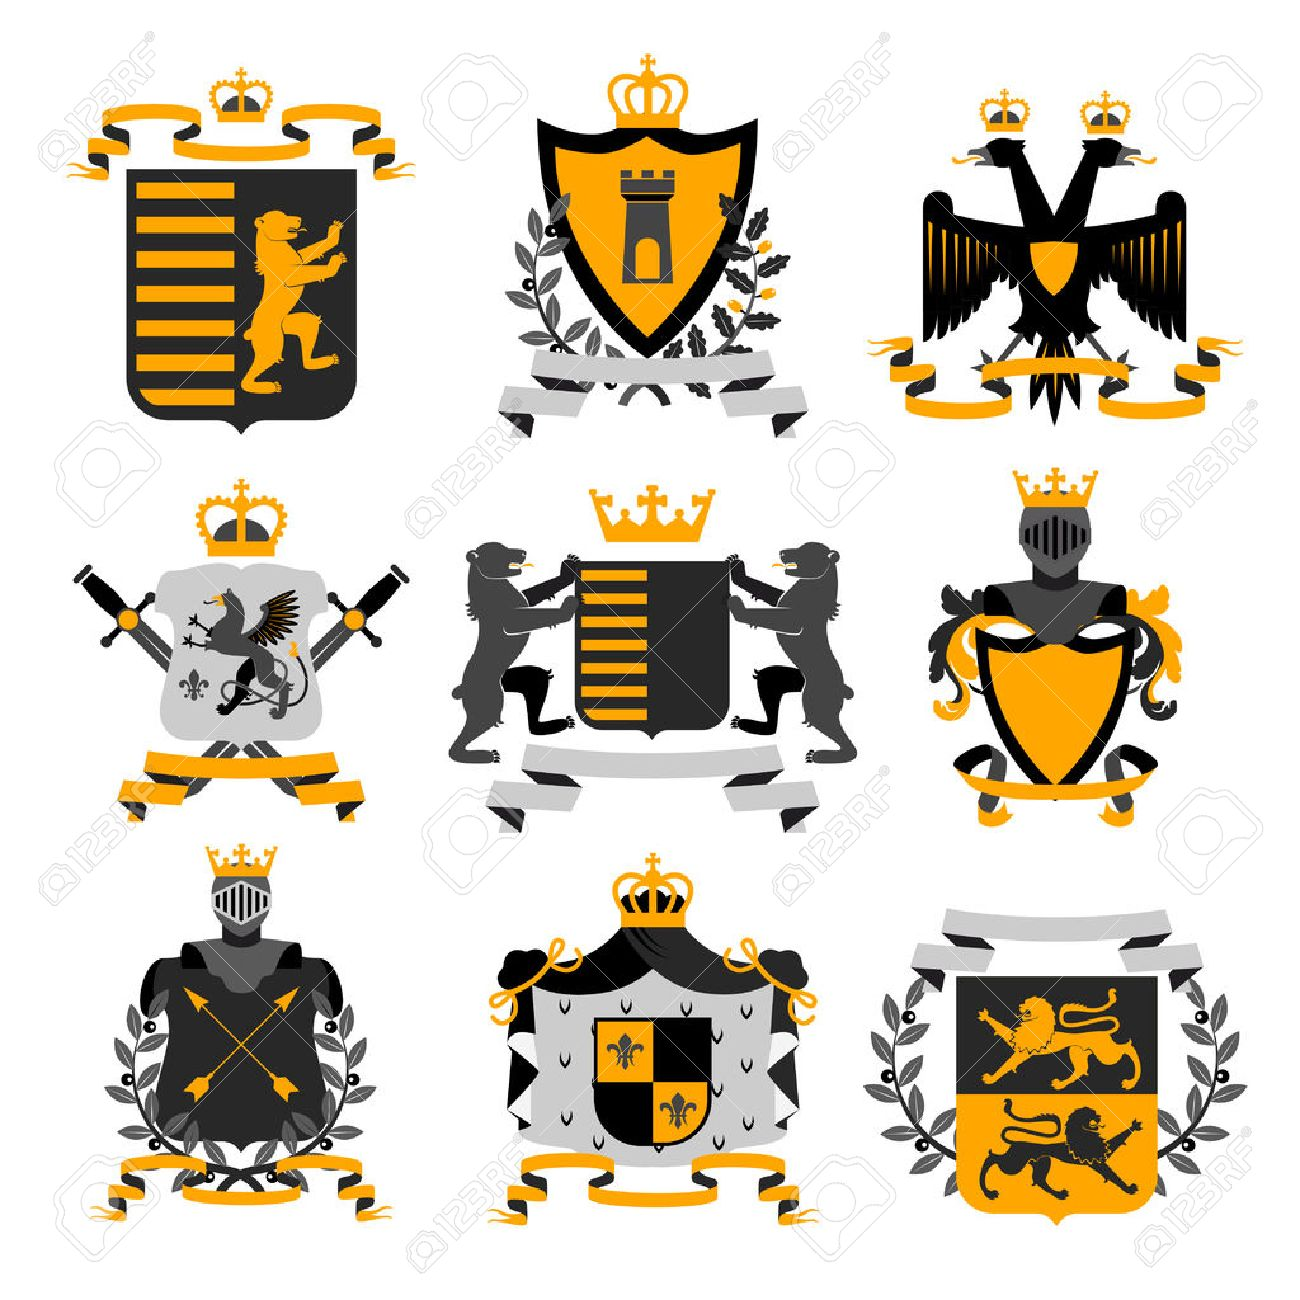 Heraldic coat of arms family crest and shields emblems golden heraldic coat of arms family crest and shields emblems golden black icons collection abstract isolated vector buycottarizona